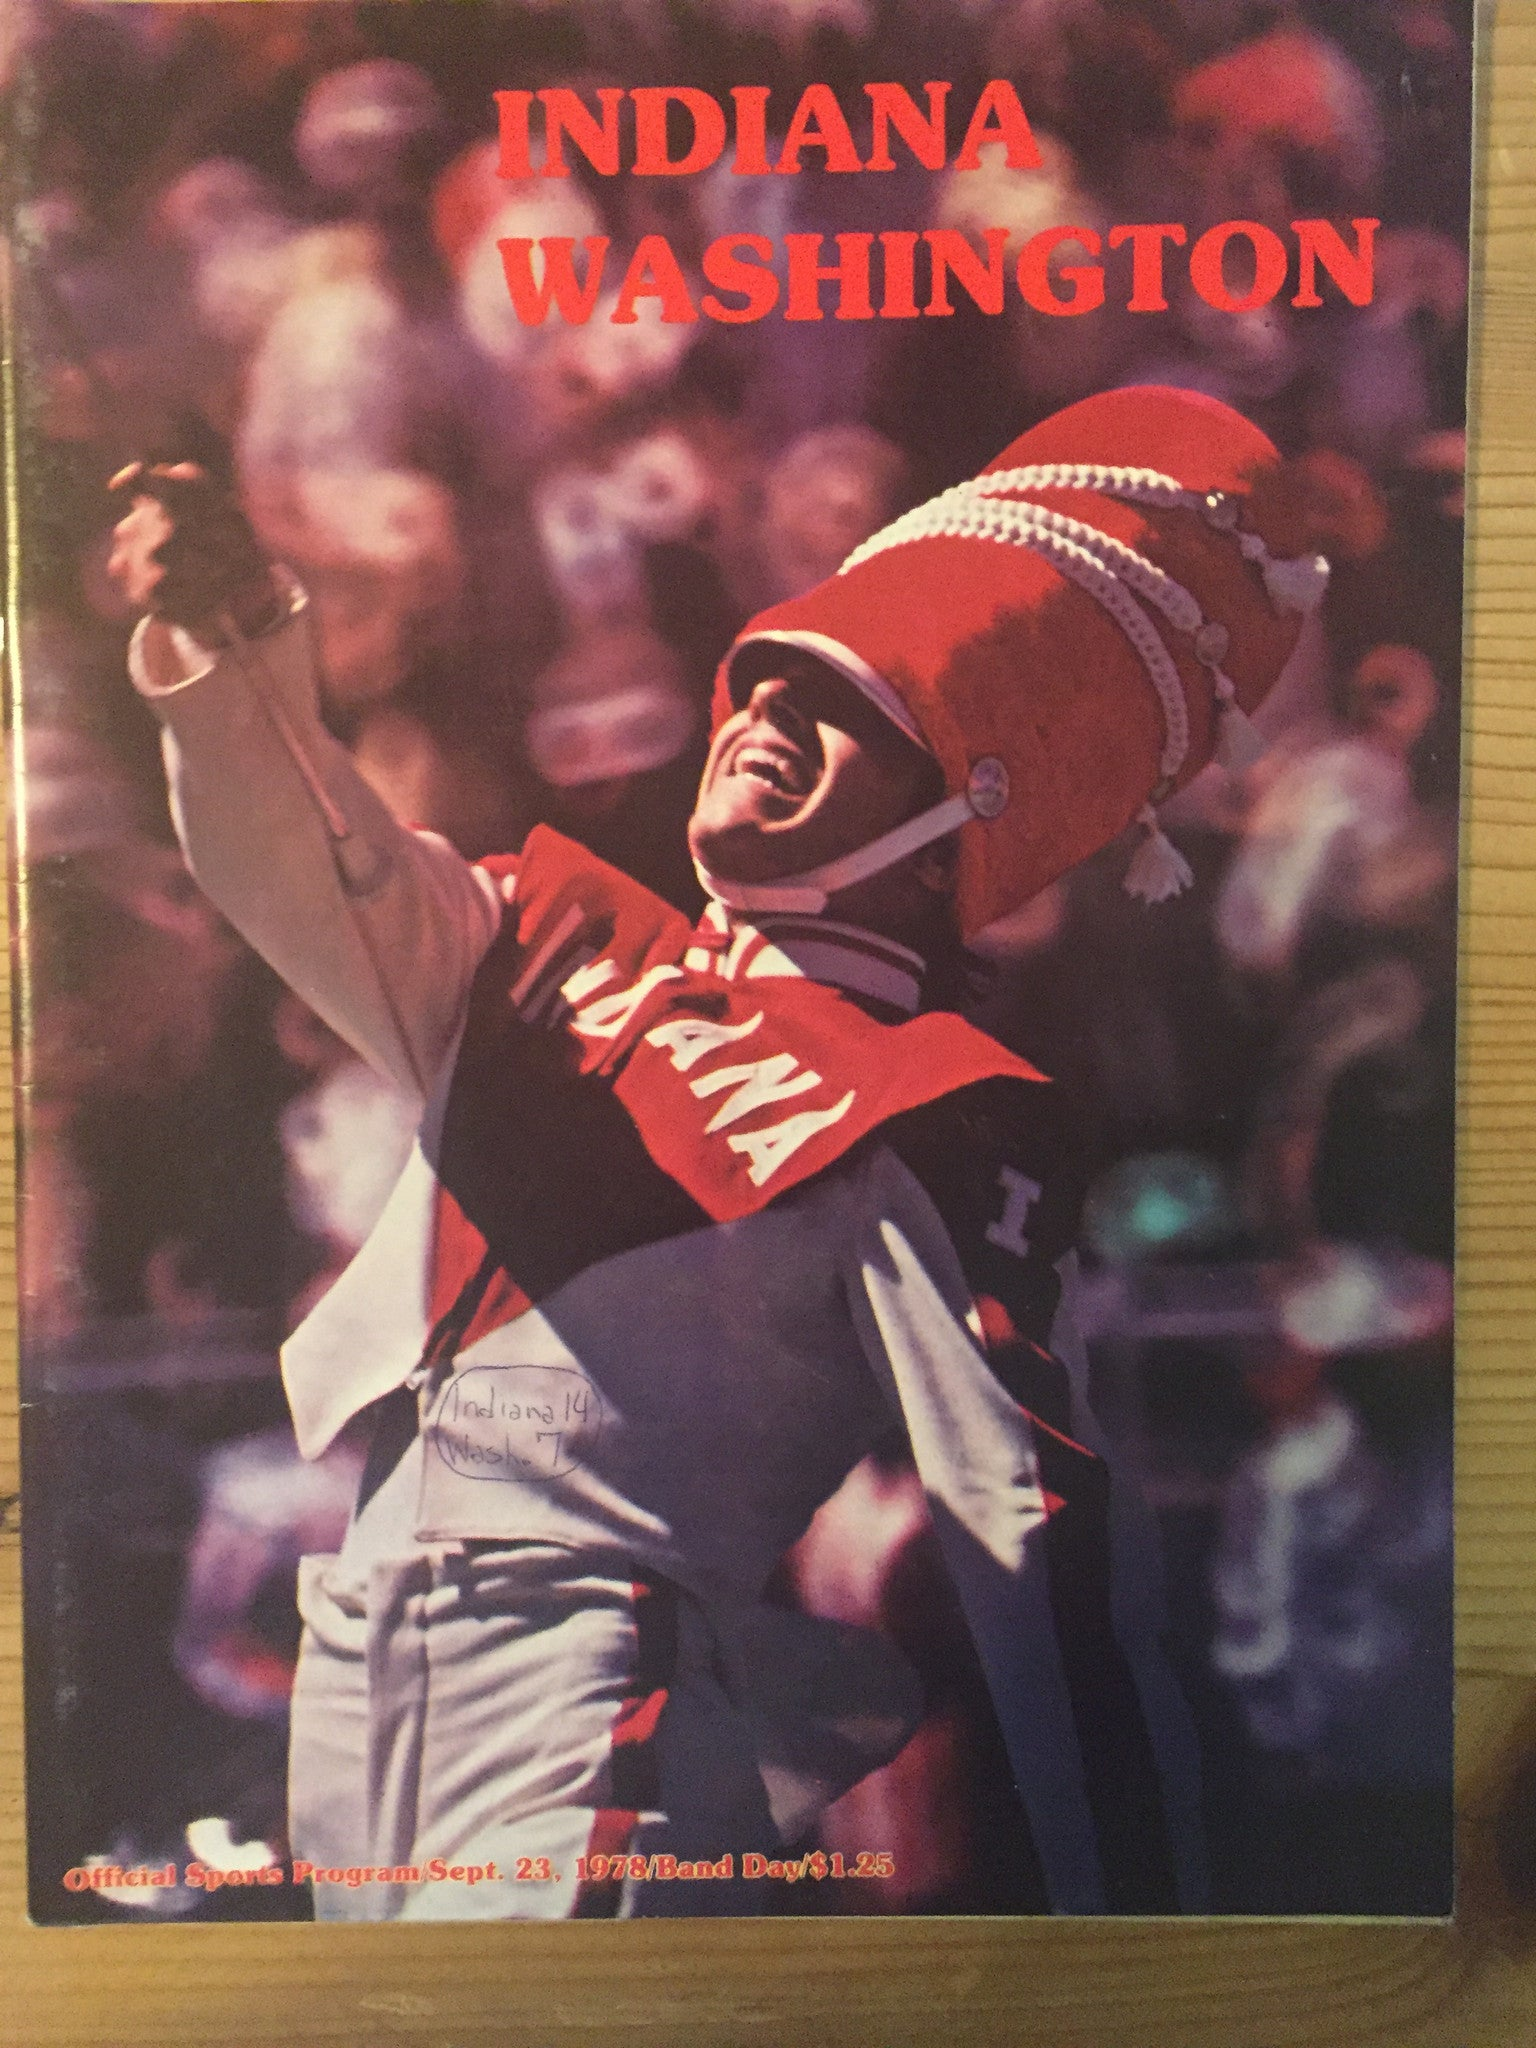 1978 Washington vs Indiana Football Program - Vintage Indy Sports